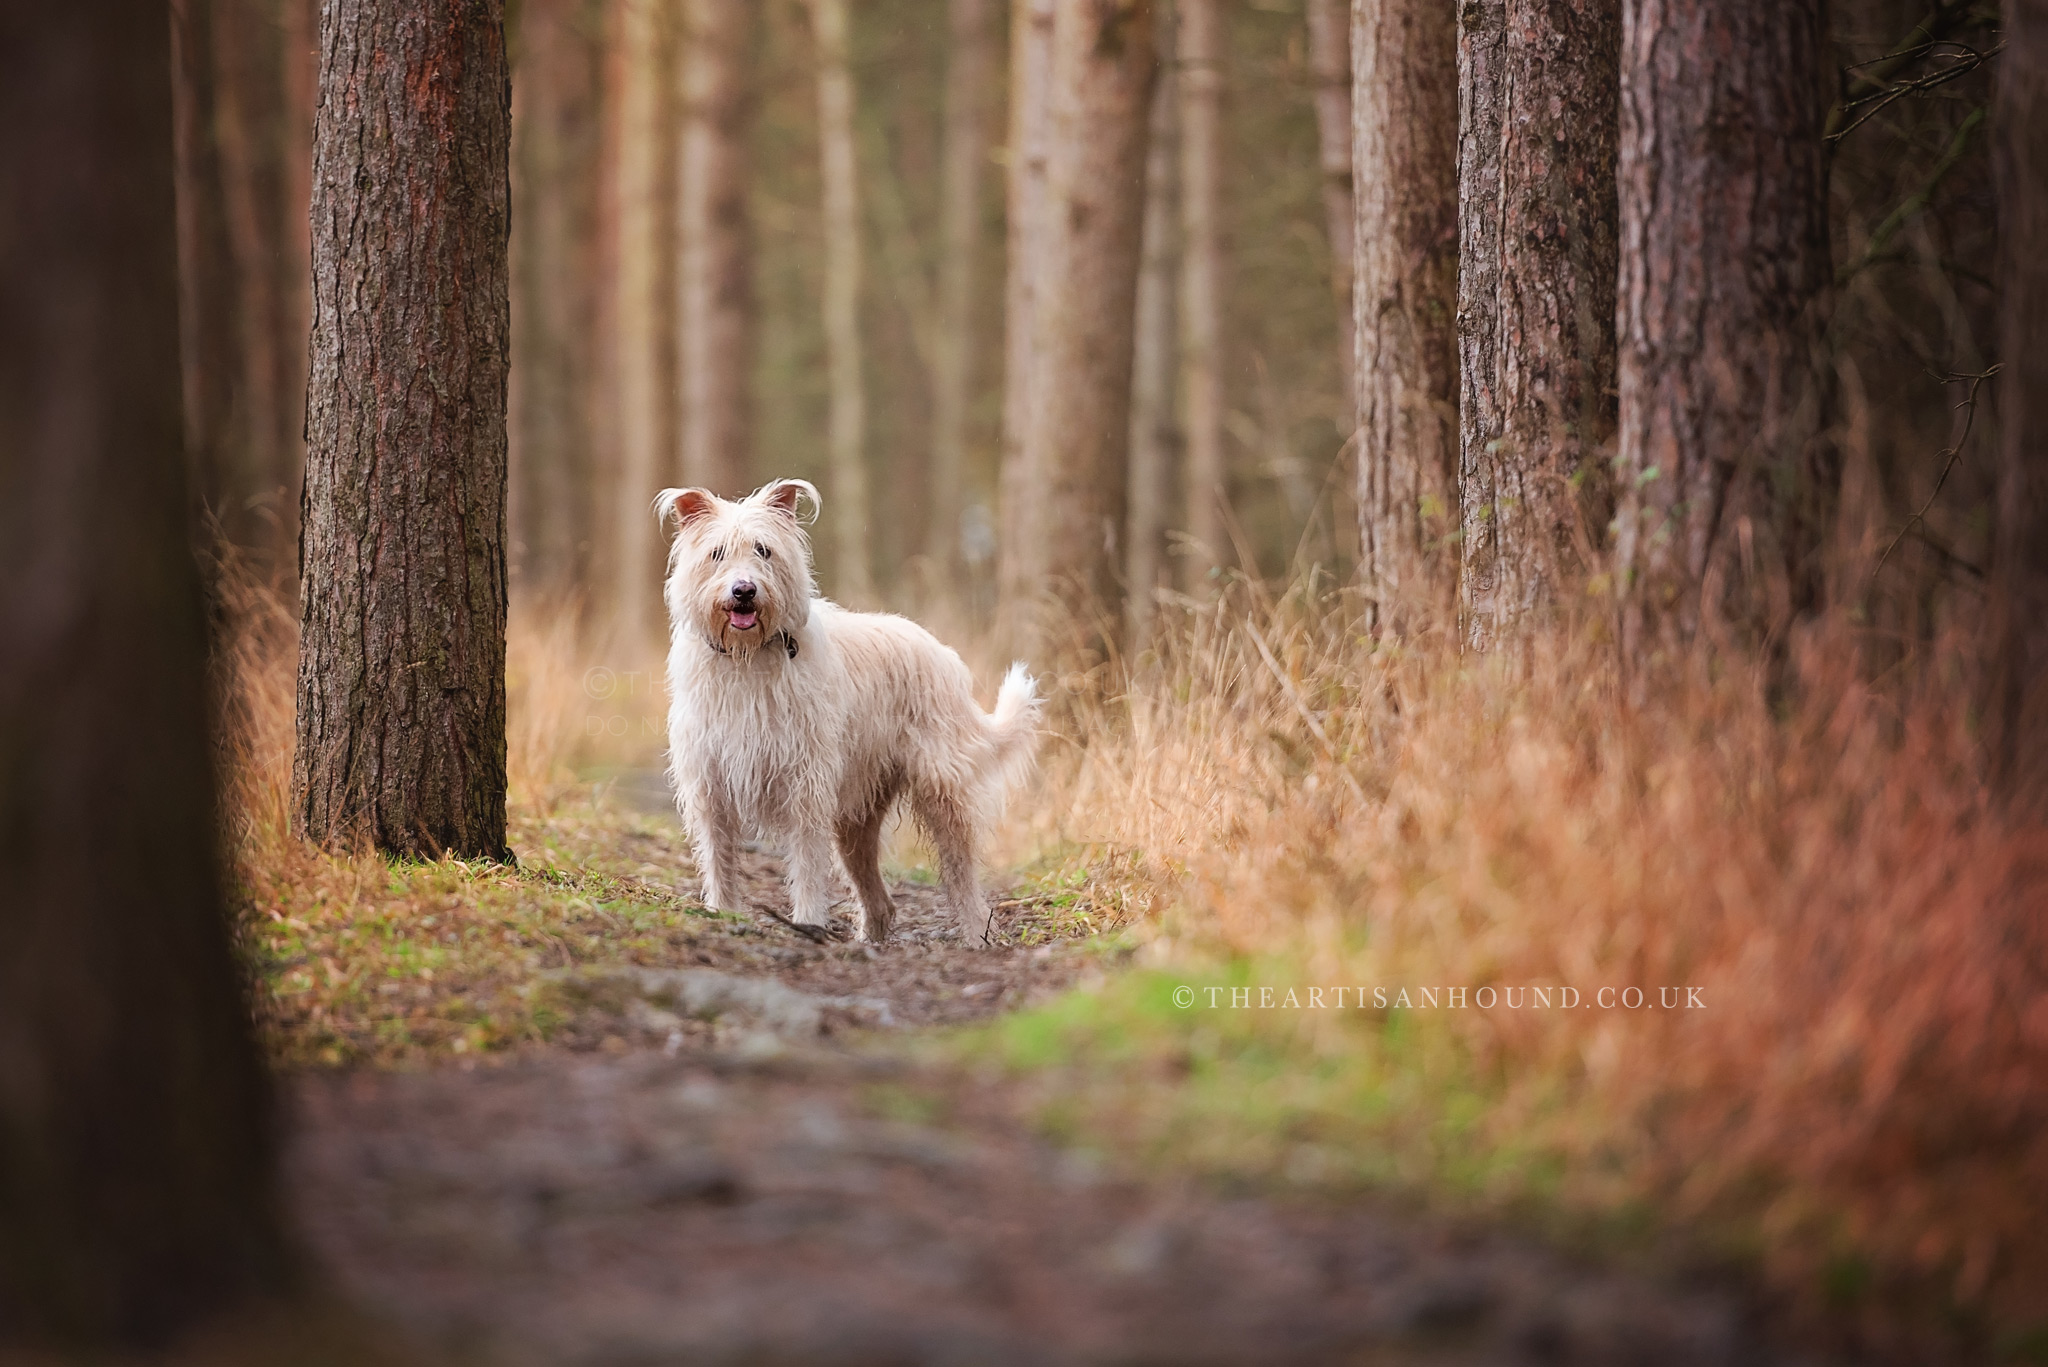 rough coated crossbreed dog standing in woods